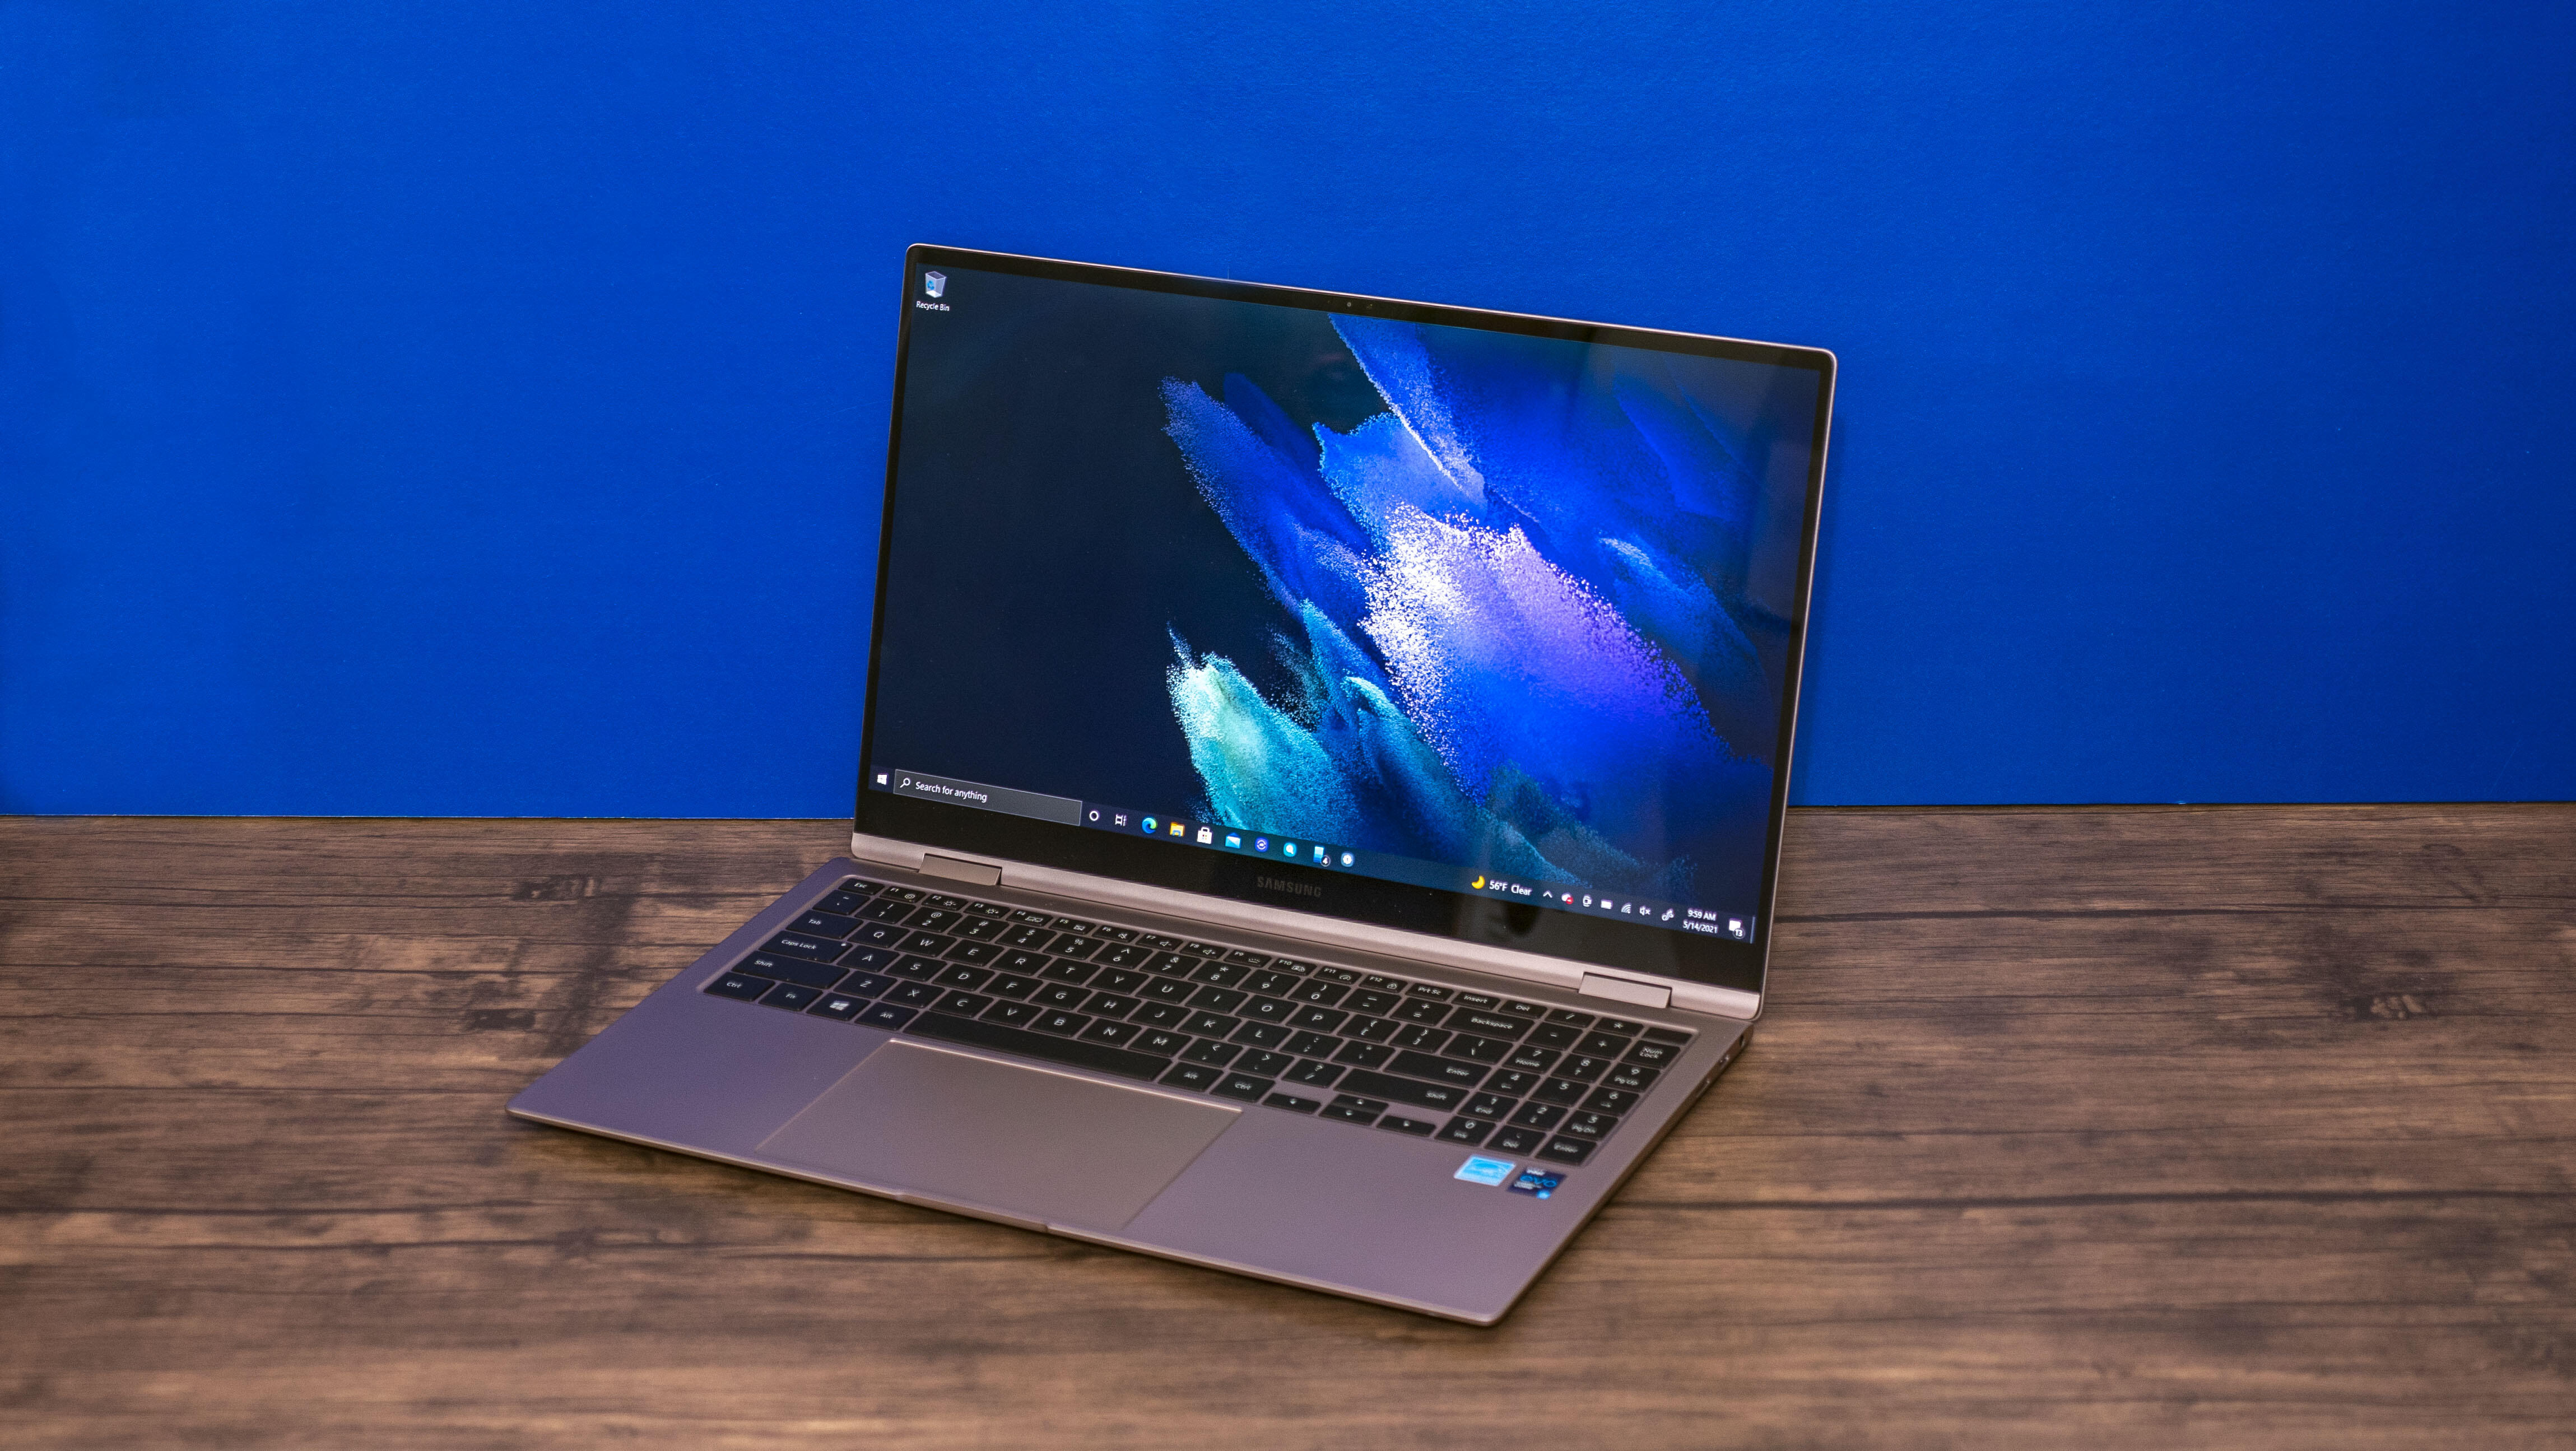 Samsung's Galaxy Book Pro 360 is the slim, elegant 2-in-1 partner for your Galaxy phone